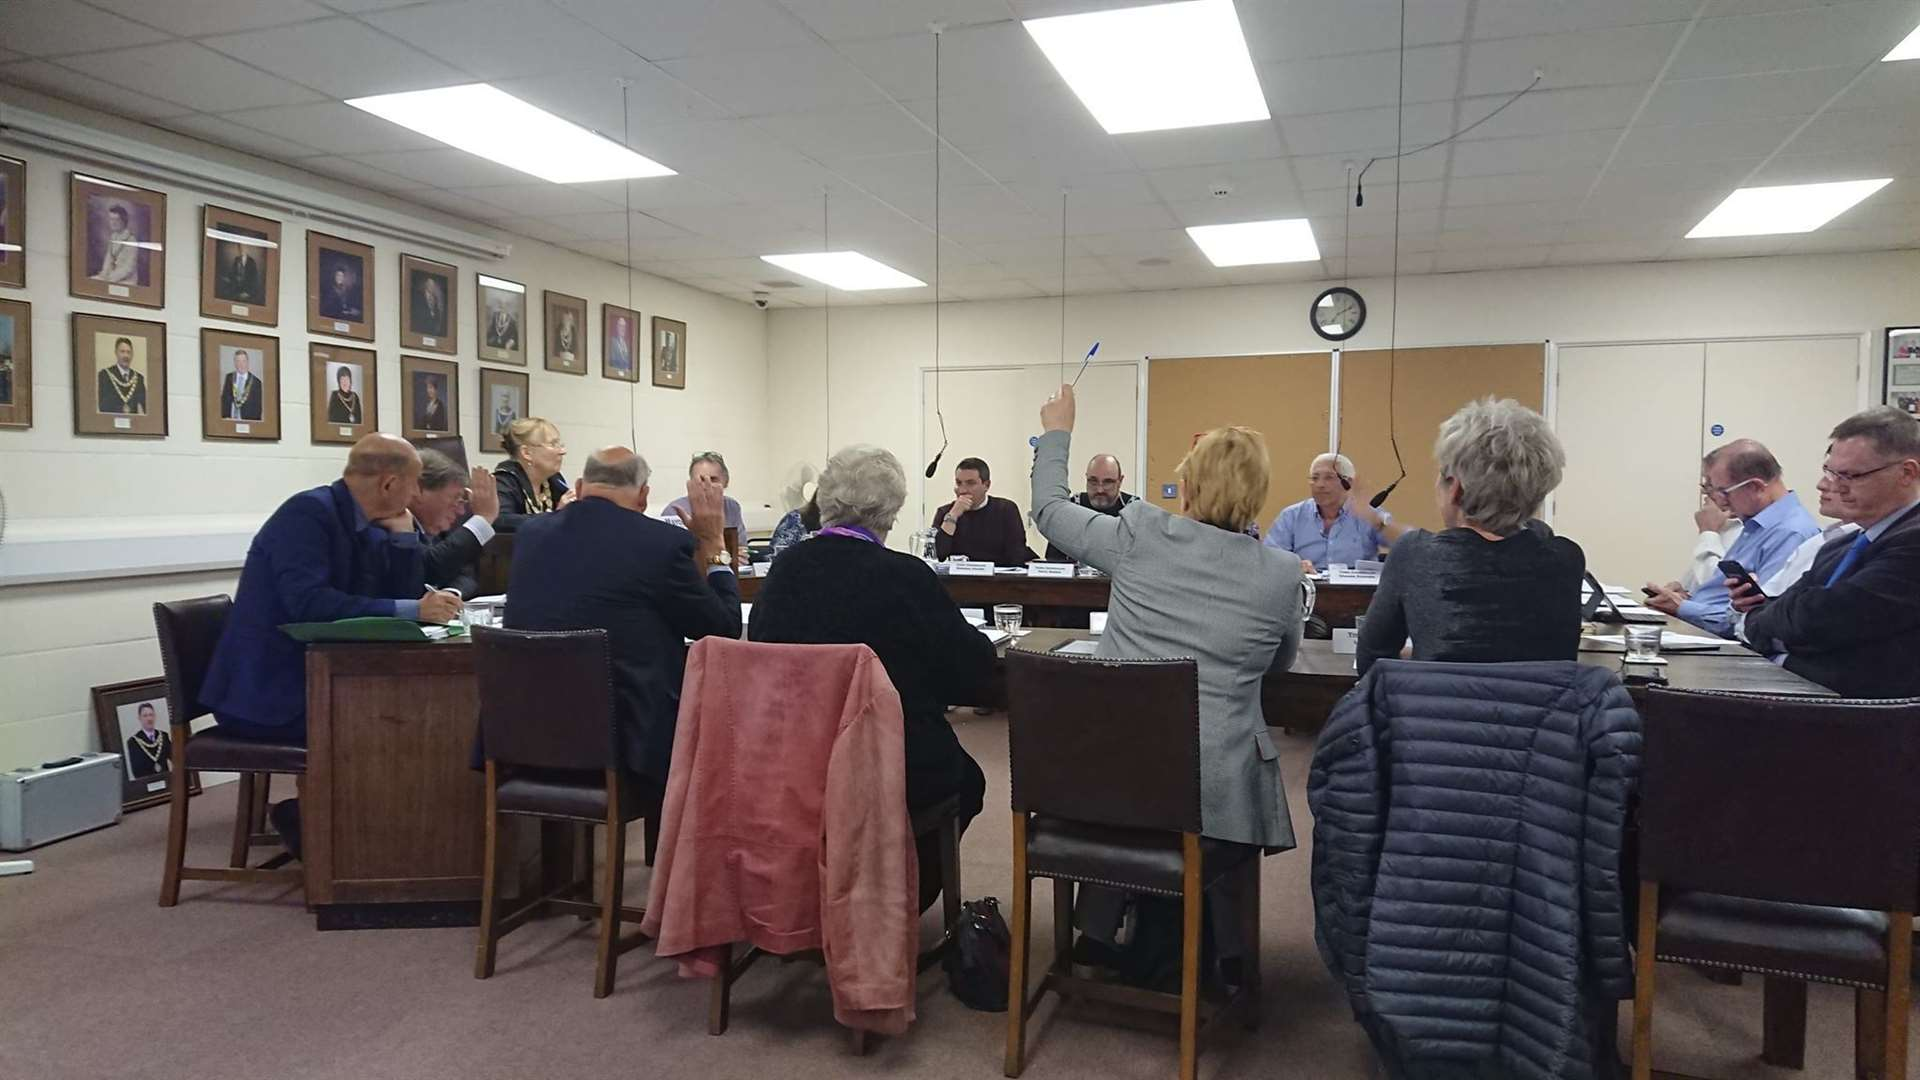 Prior to the pandemic, Swaffham Town Council usually meet in the council chamber in the town hall